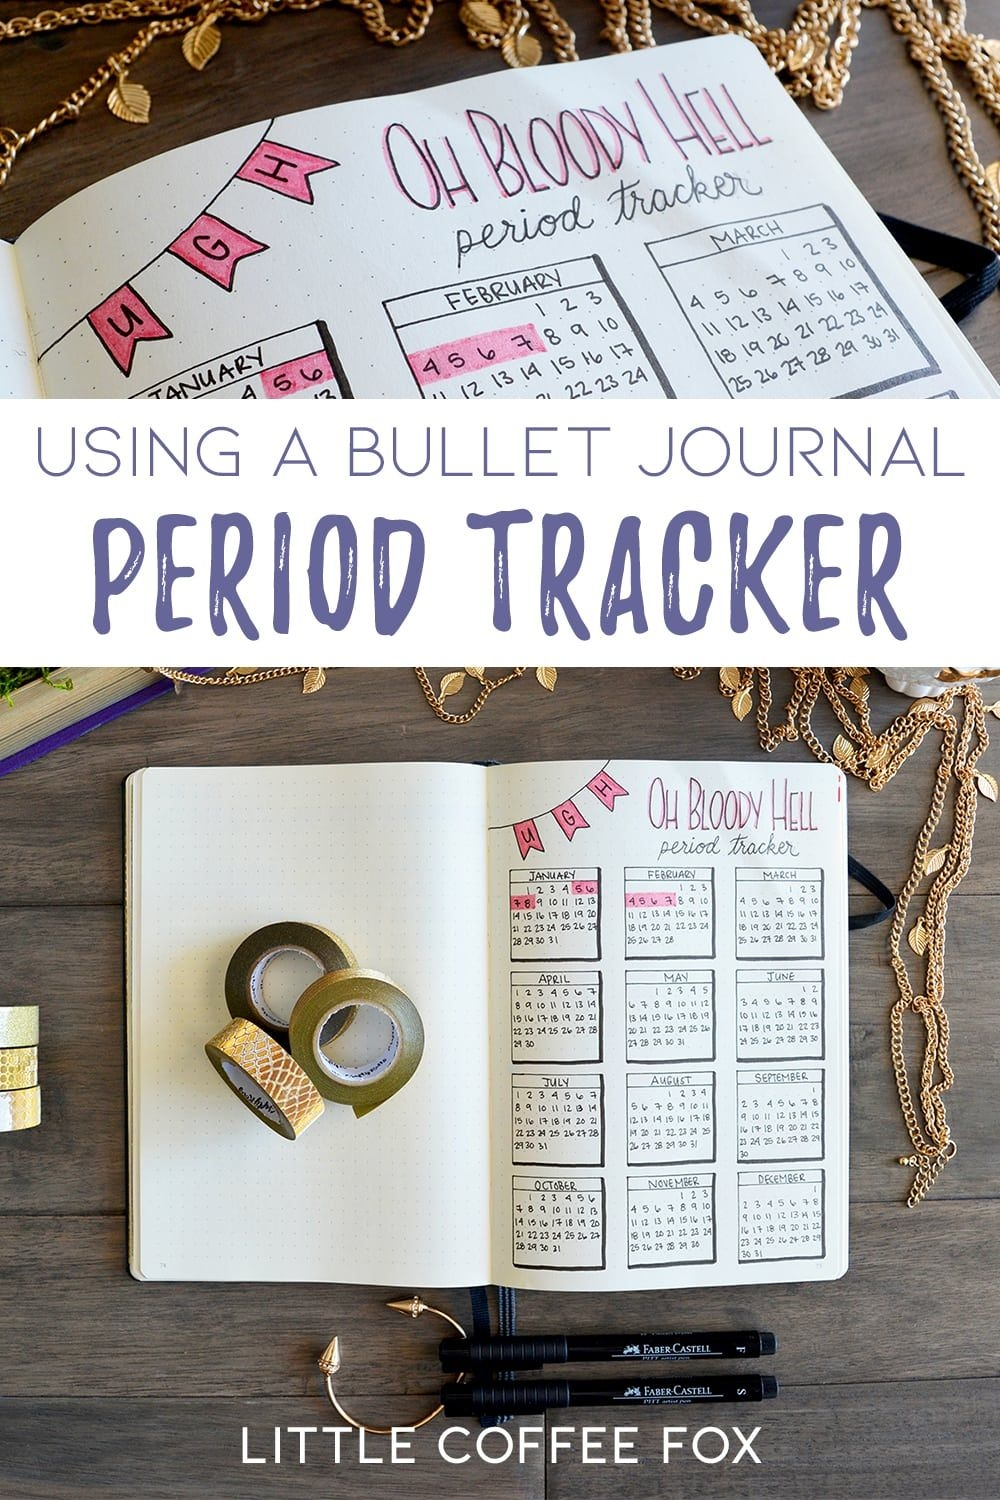 Bullet Journal Period Tracker: The Benefits Of Tracking Your